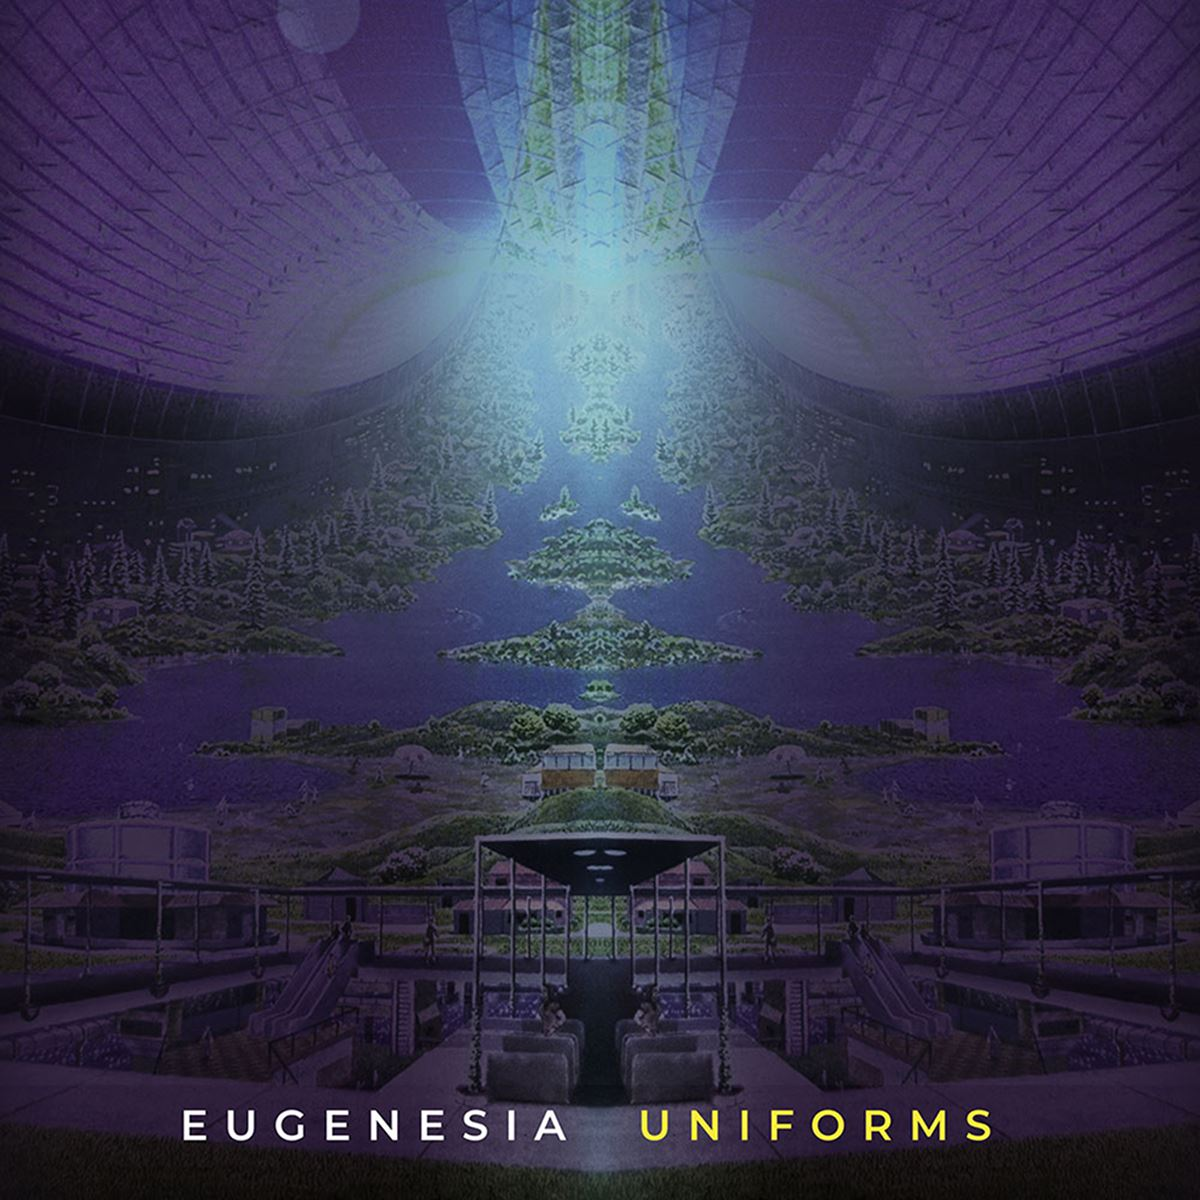 uniforms eugenesia